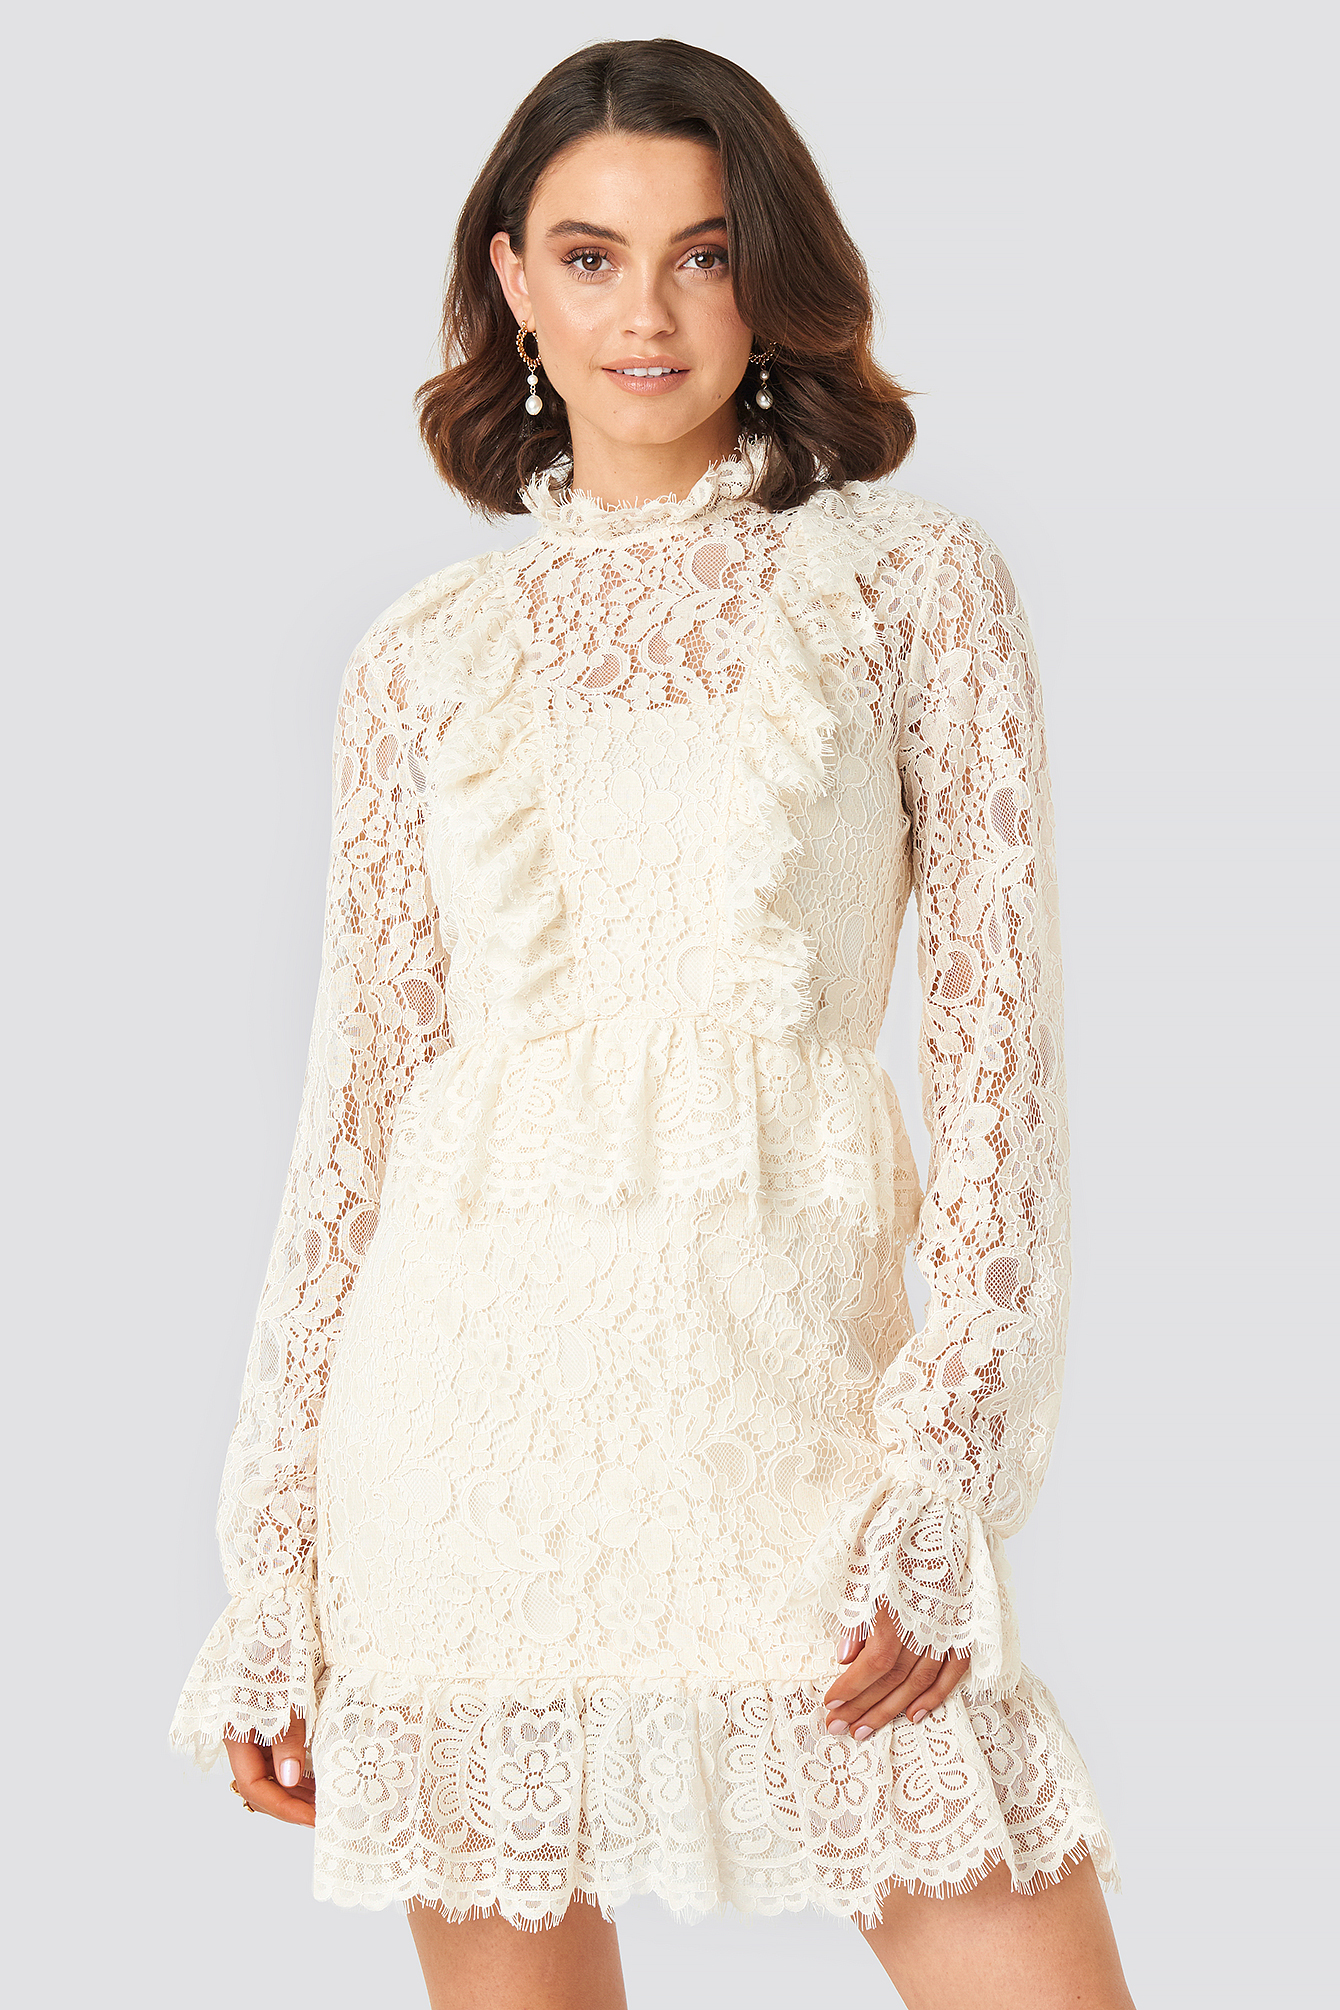 Queen Of Jetlags X Na-kd Frill Detailed Mini Lace Dress White In Off White